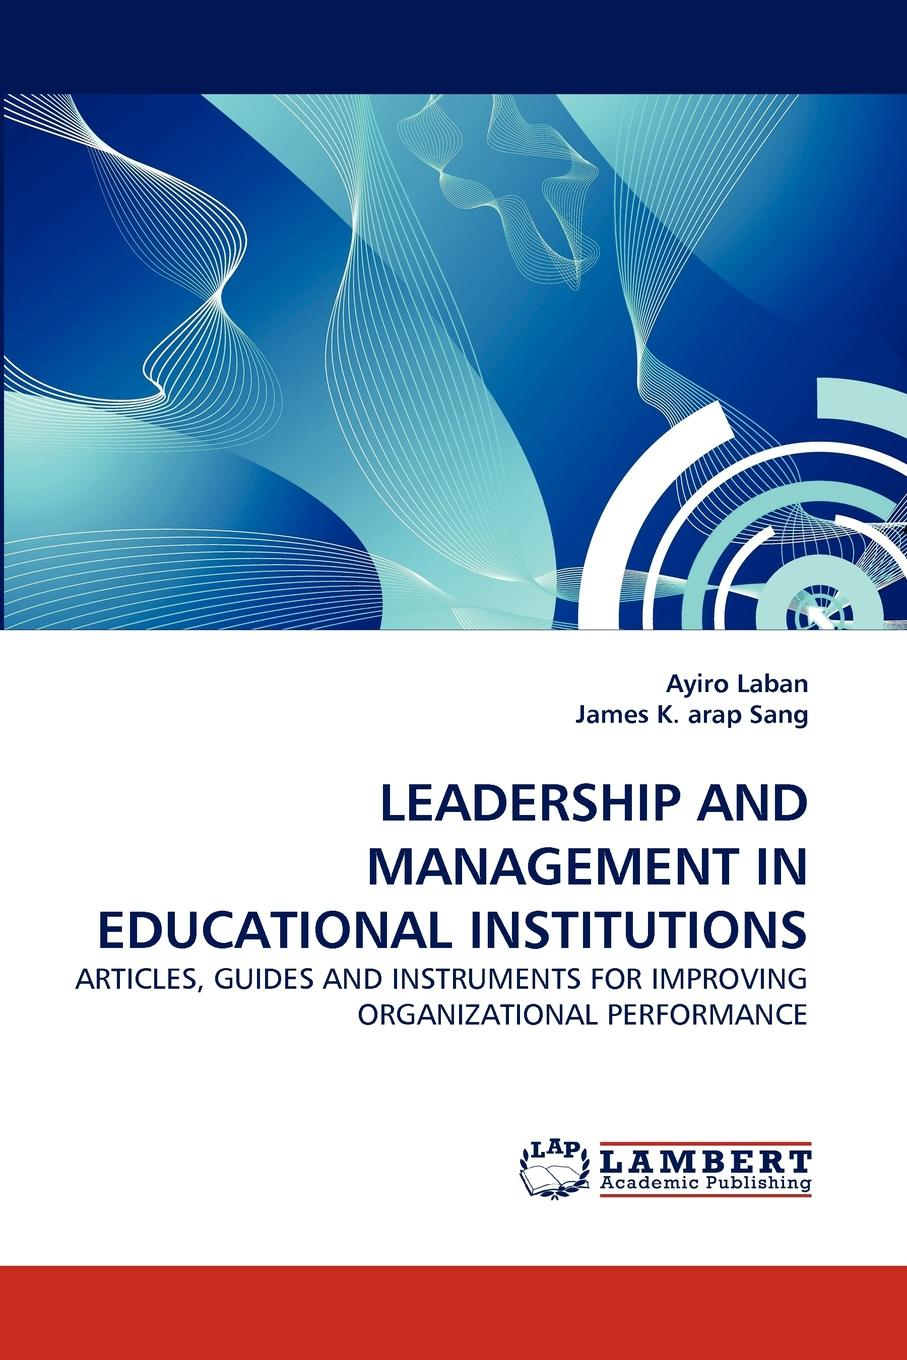 Ayiro Laban, James K. arap Sang LEADERSHIP AND MANAGEMENT IN EDUCATIONAL INSTITUTIONS цена